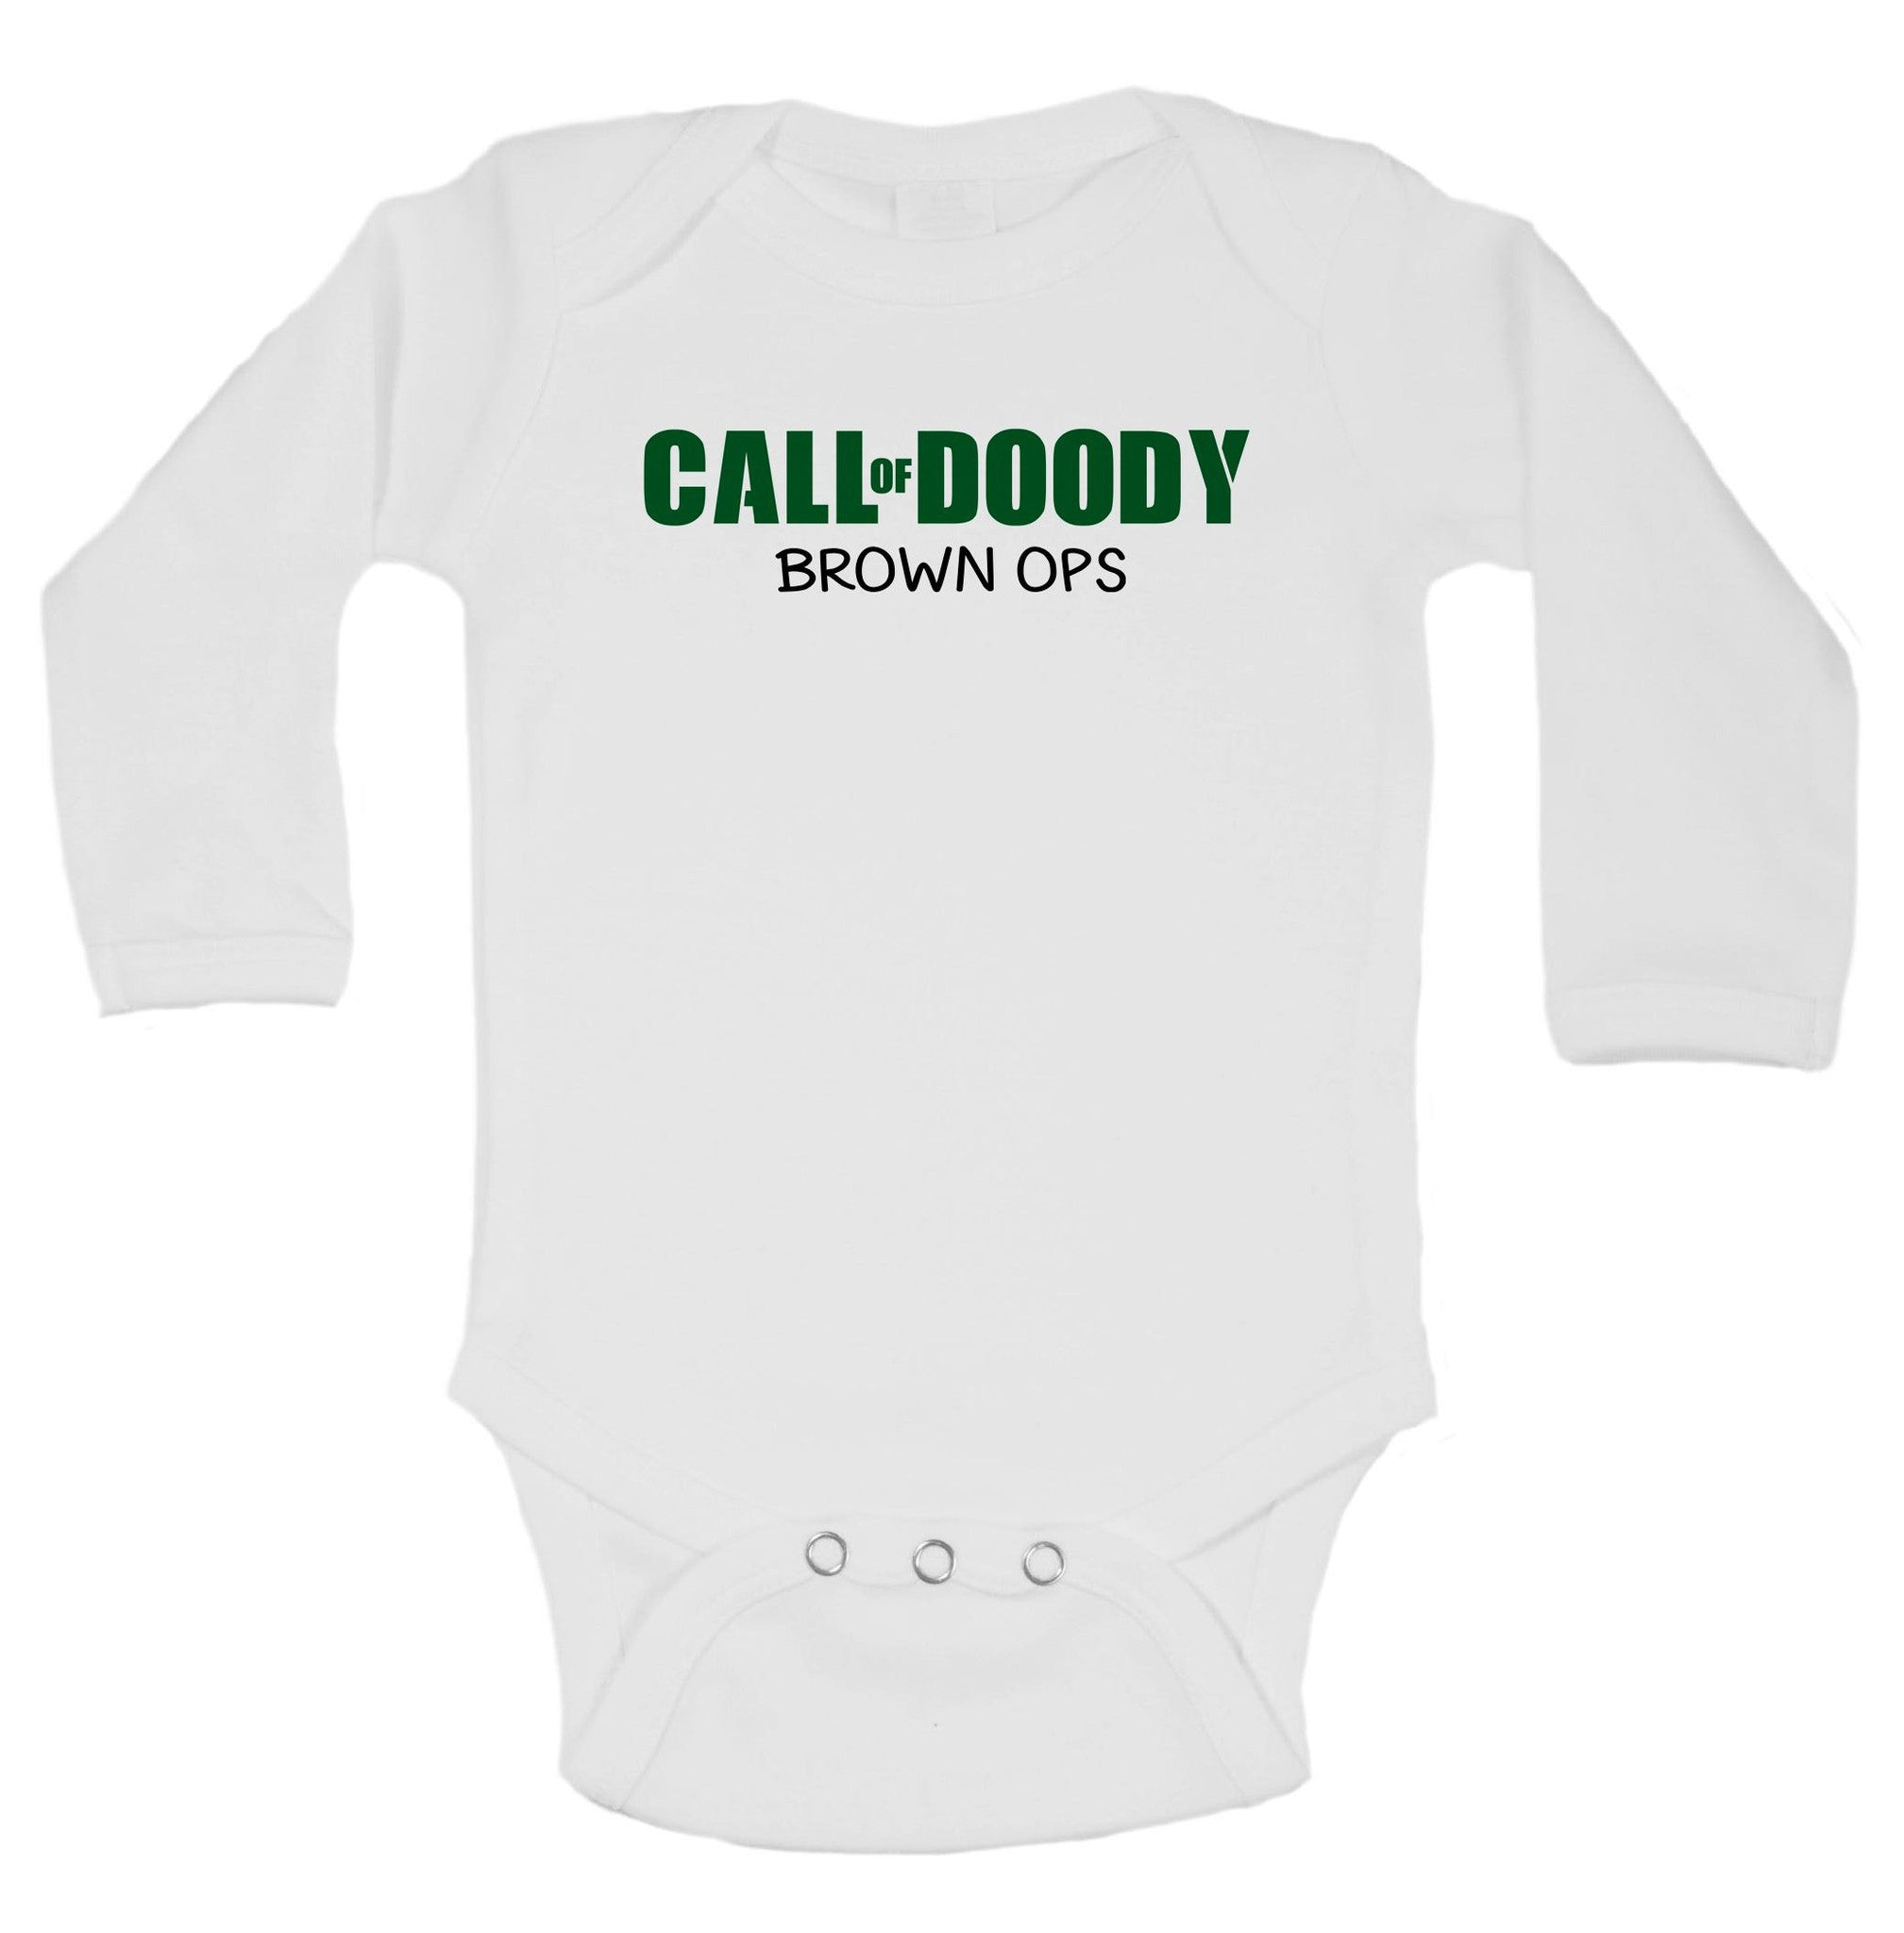 Call Of Doody Brown Ops Funny Kids Onesie - B38 - Funny Shirts Tank Tops Burnouts and Triblends  - 1